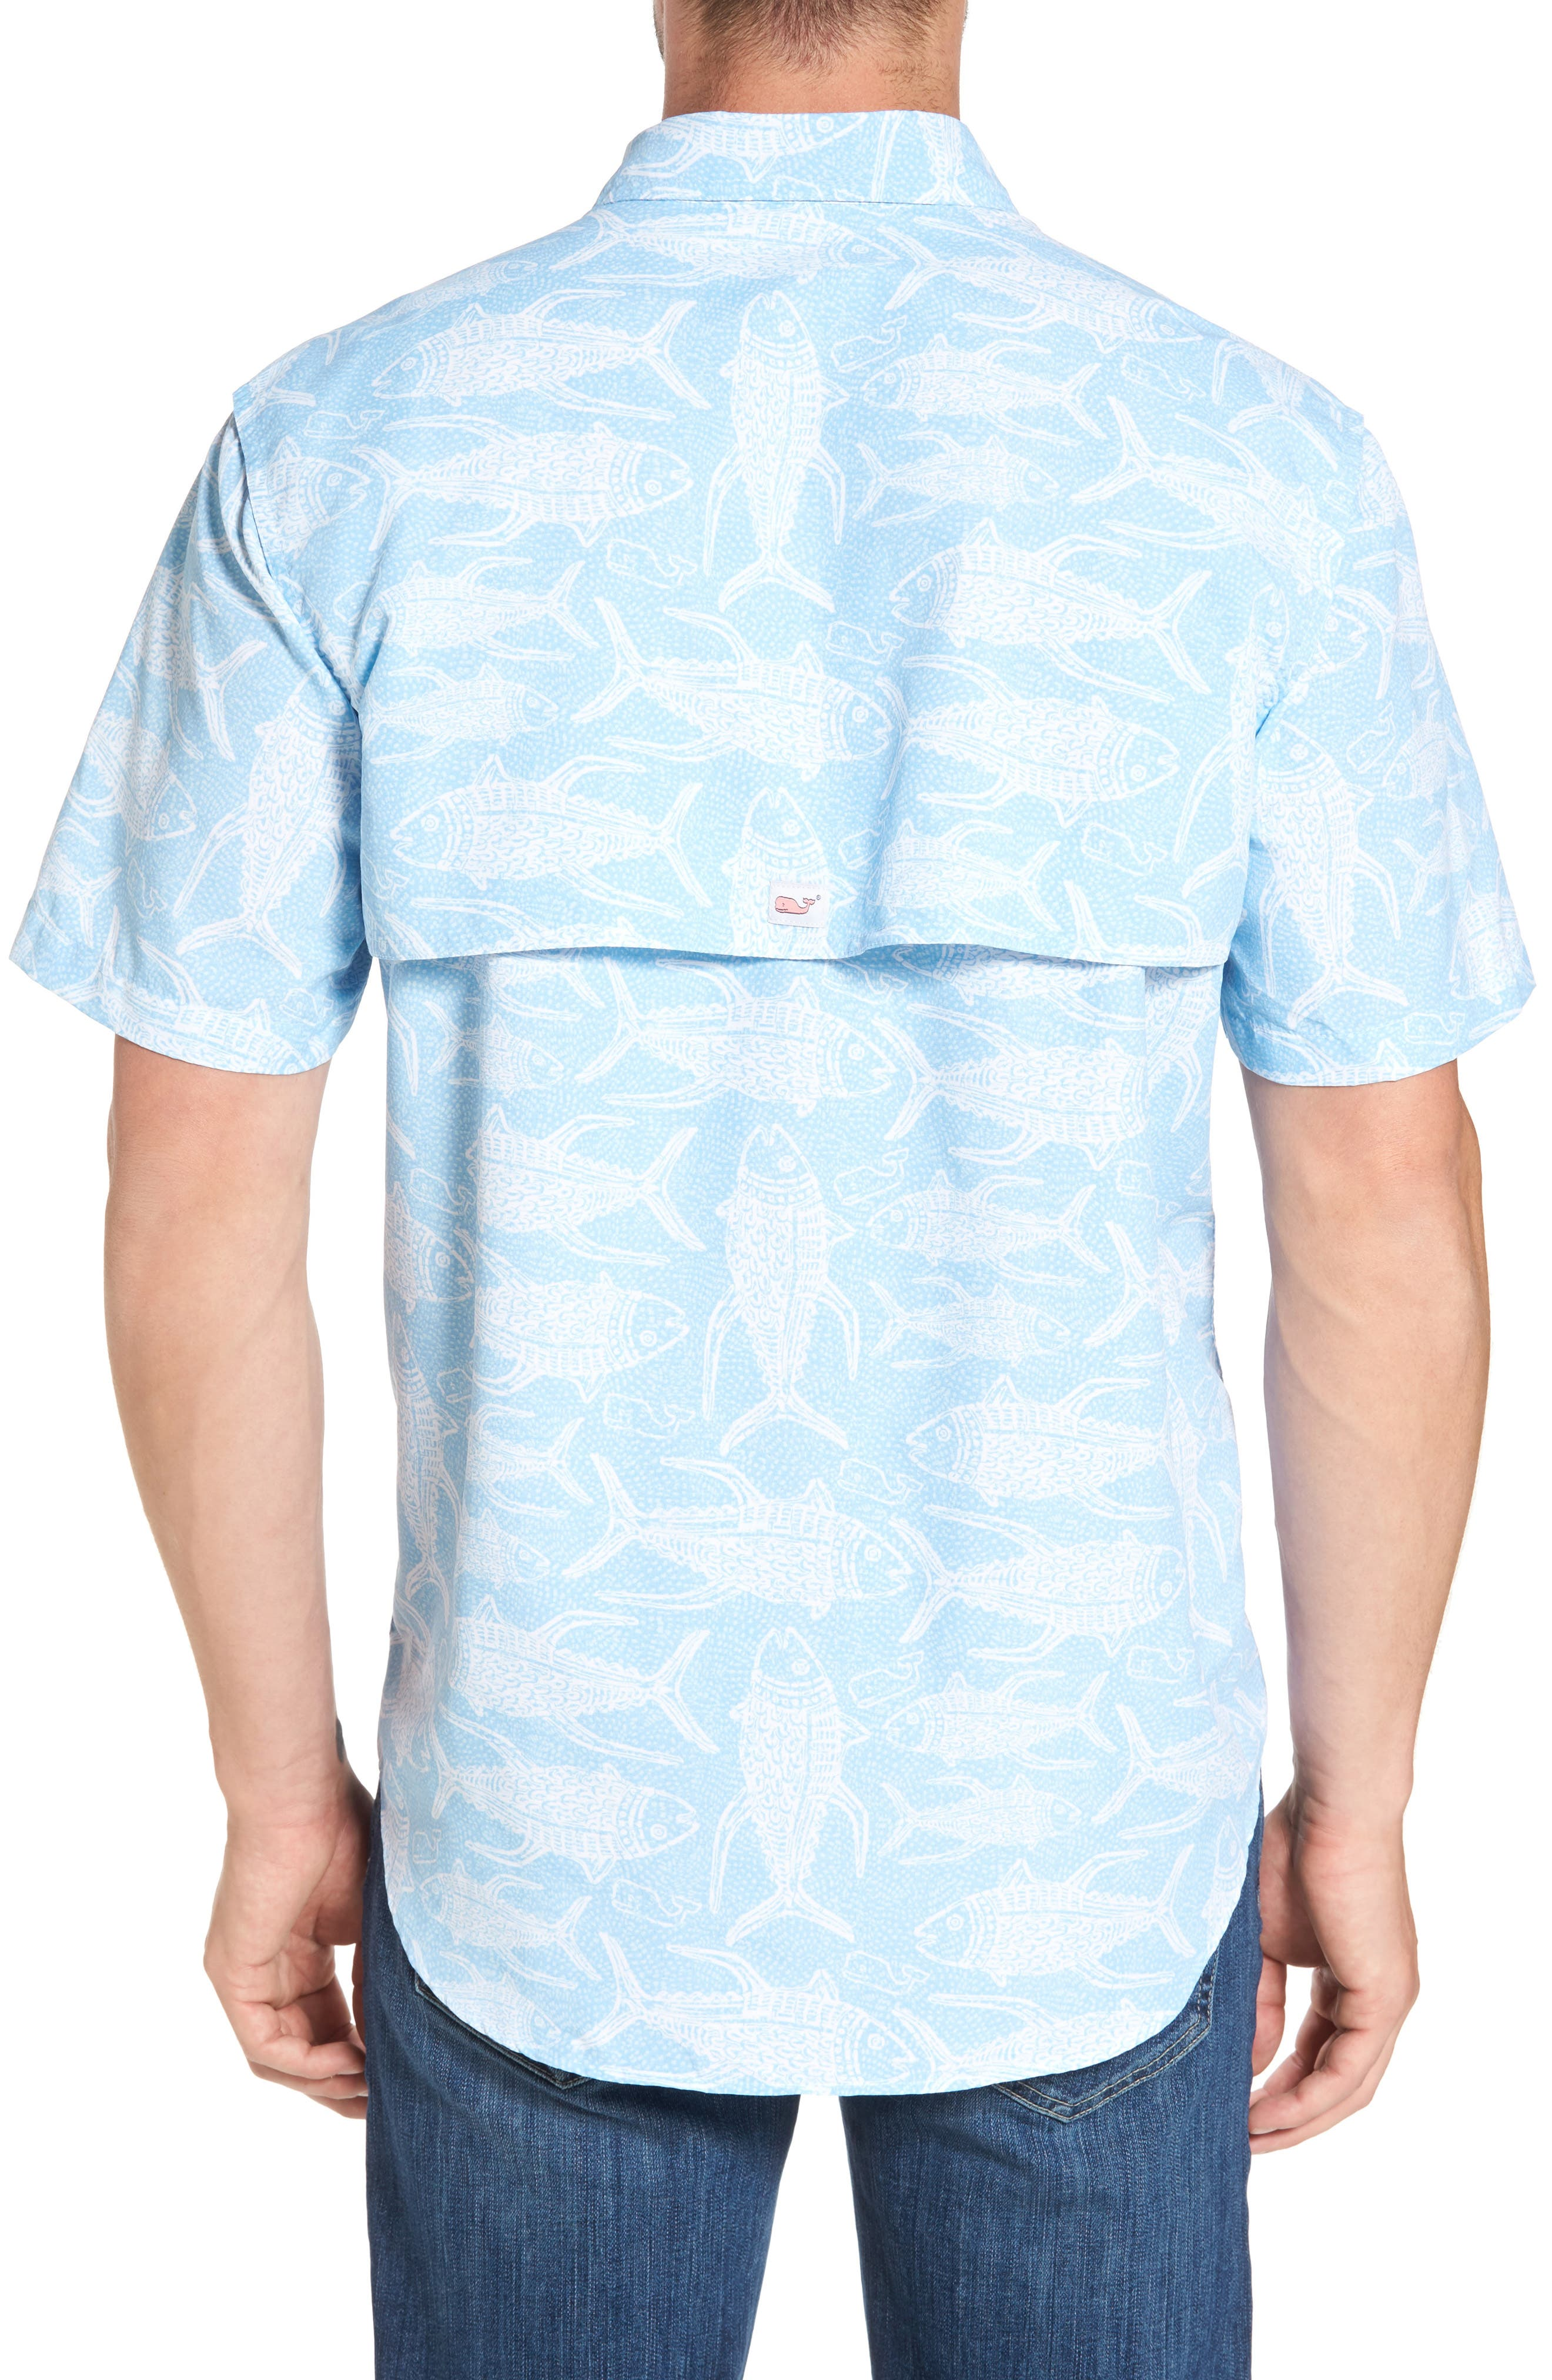 Alternate Image 2  - Vineyard Vines Tuna Batic Harbor Short Sleeve Sport Shirt